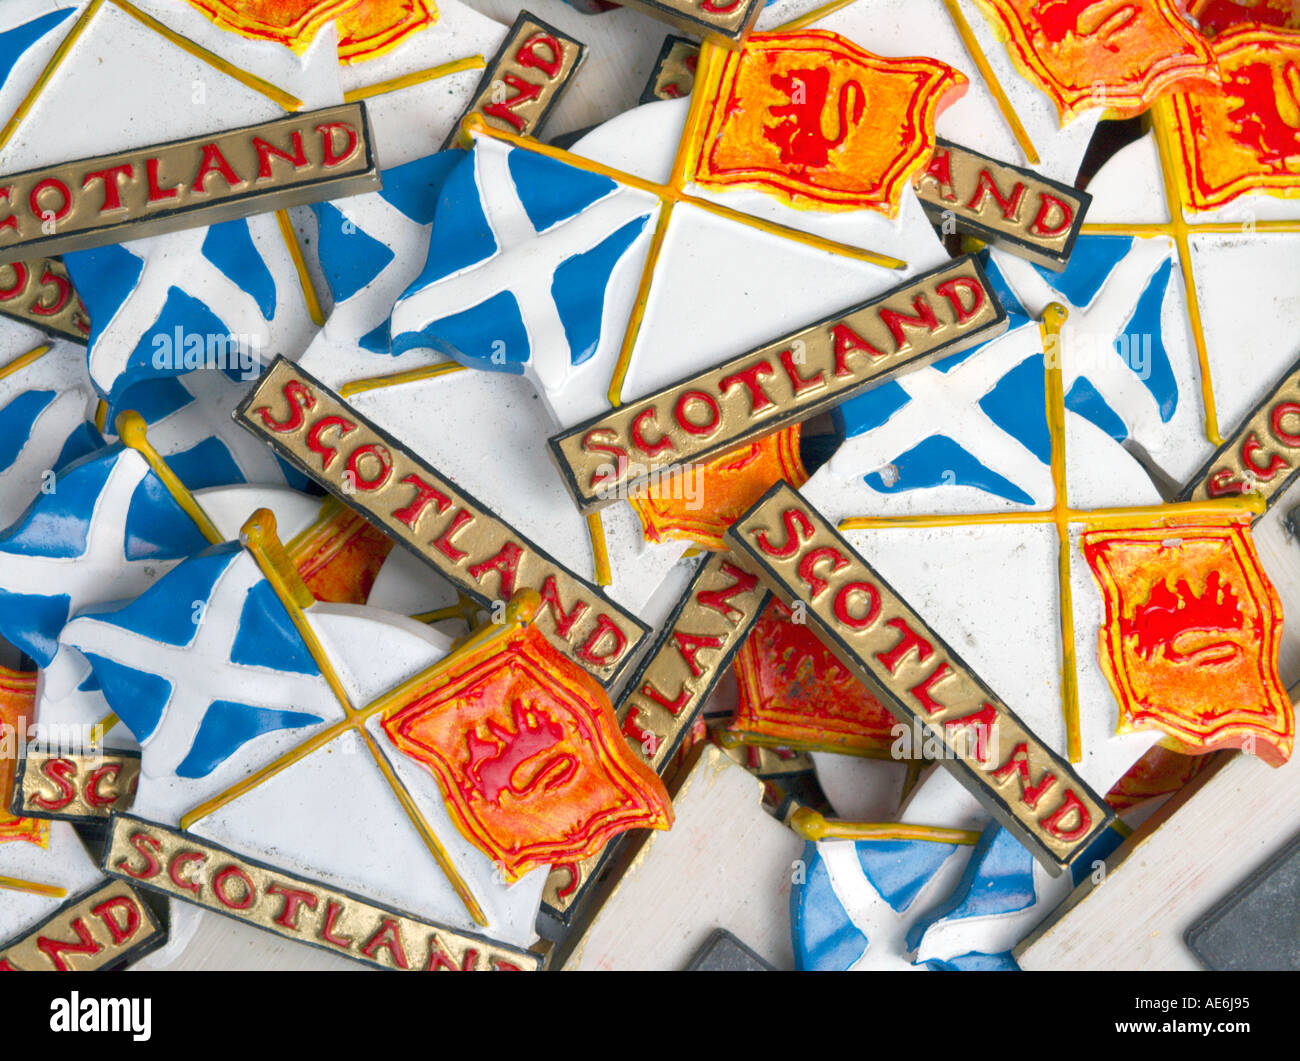 Scottish Souvenir Shop Edinburgh Stockfotos & Scottish Souvenir Shop ...